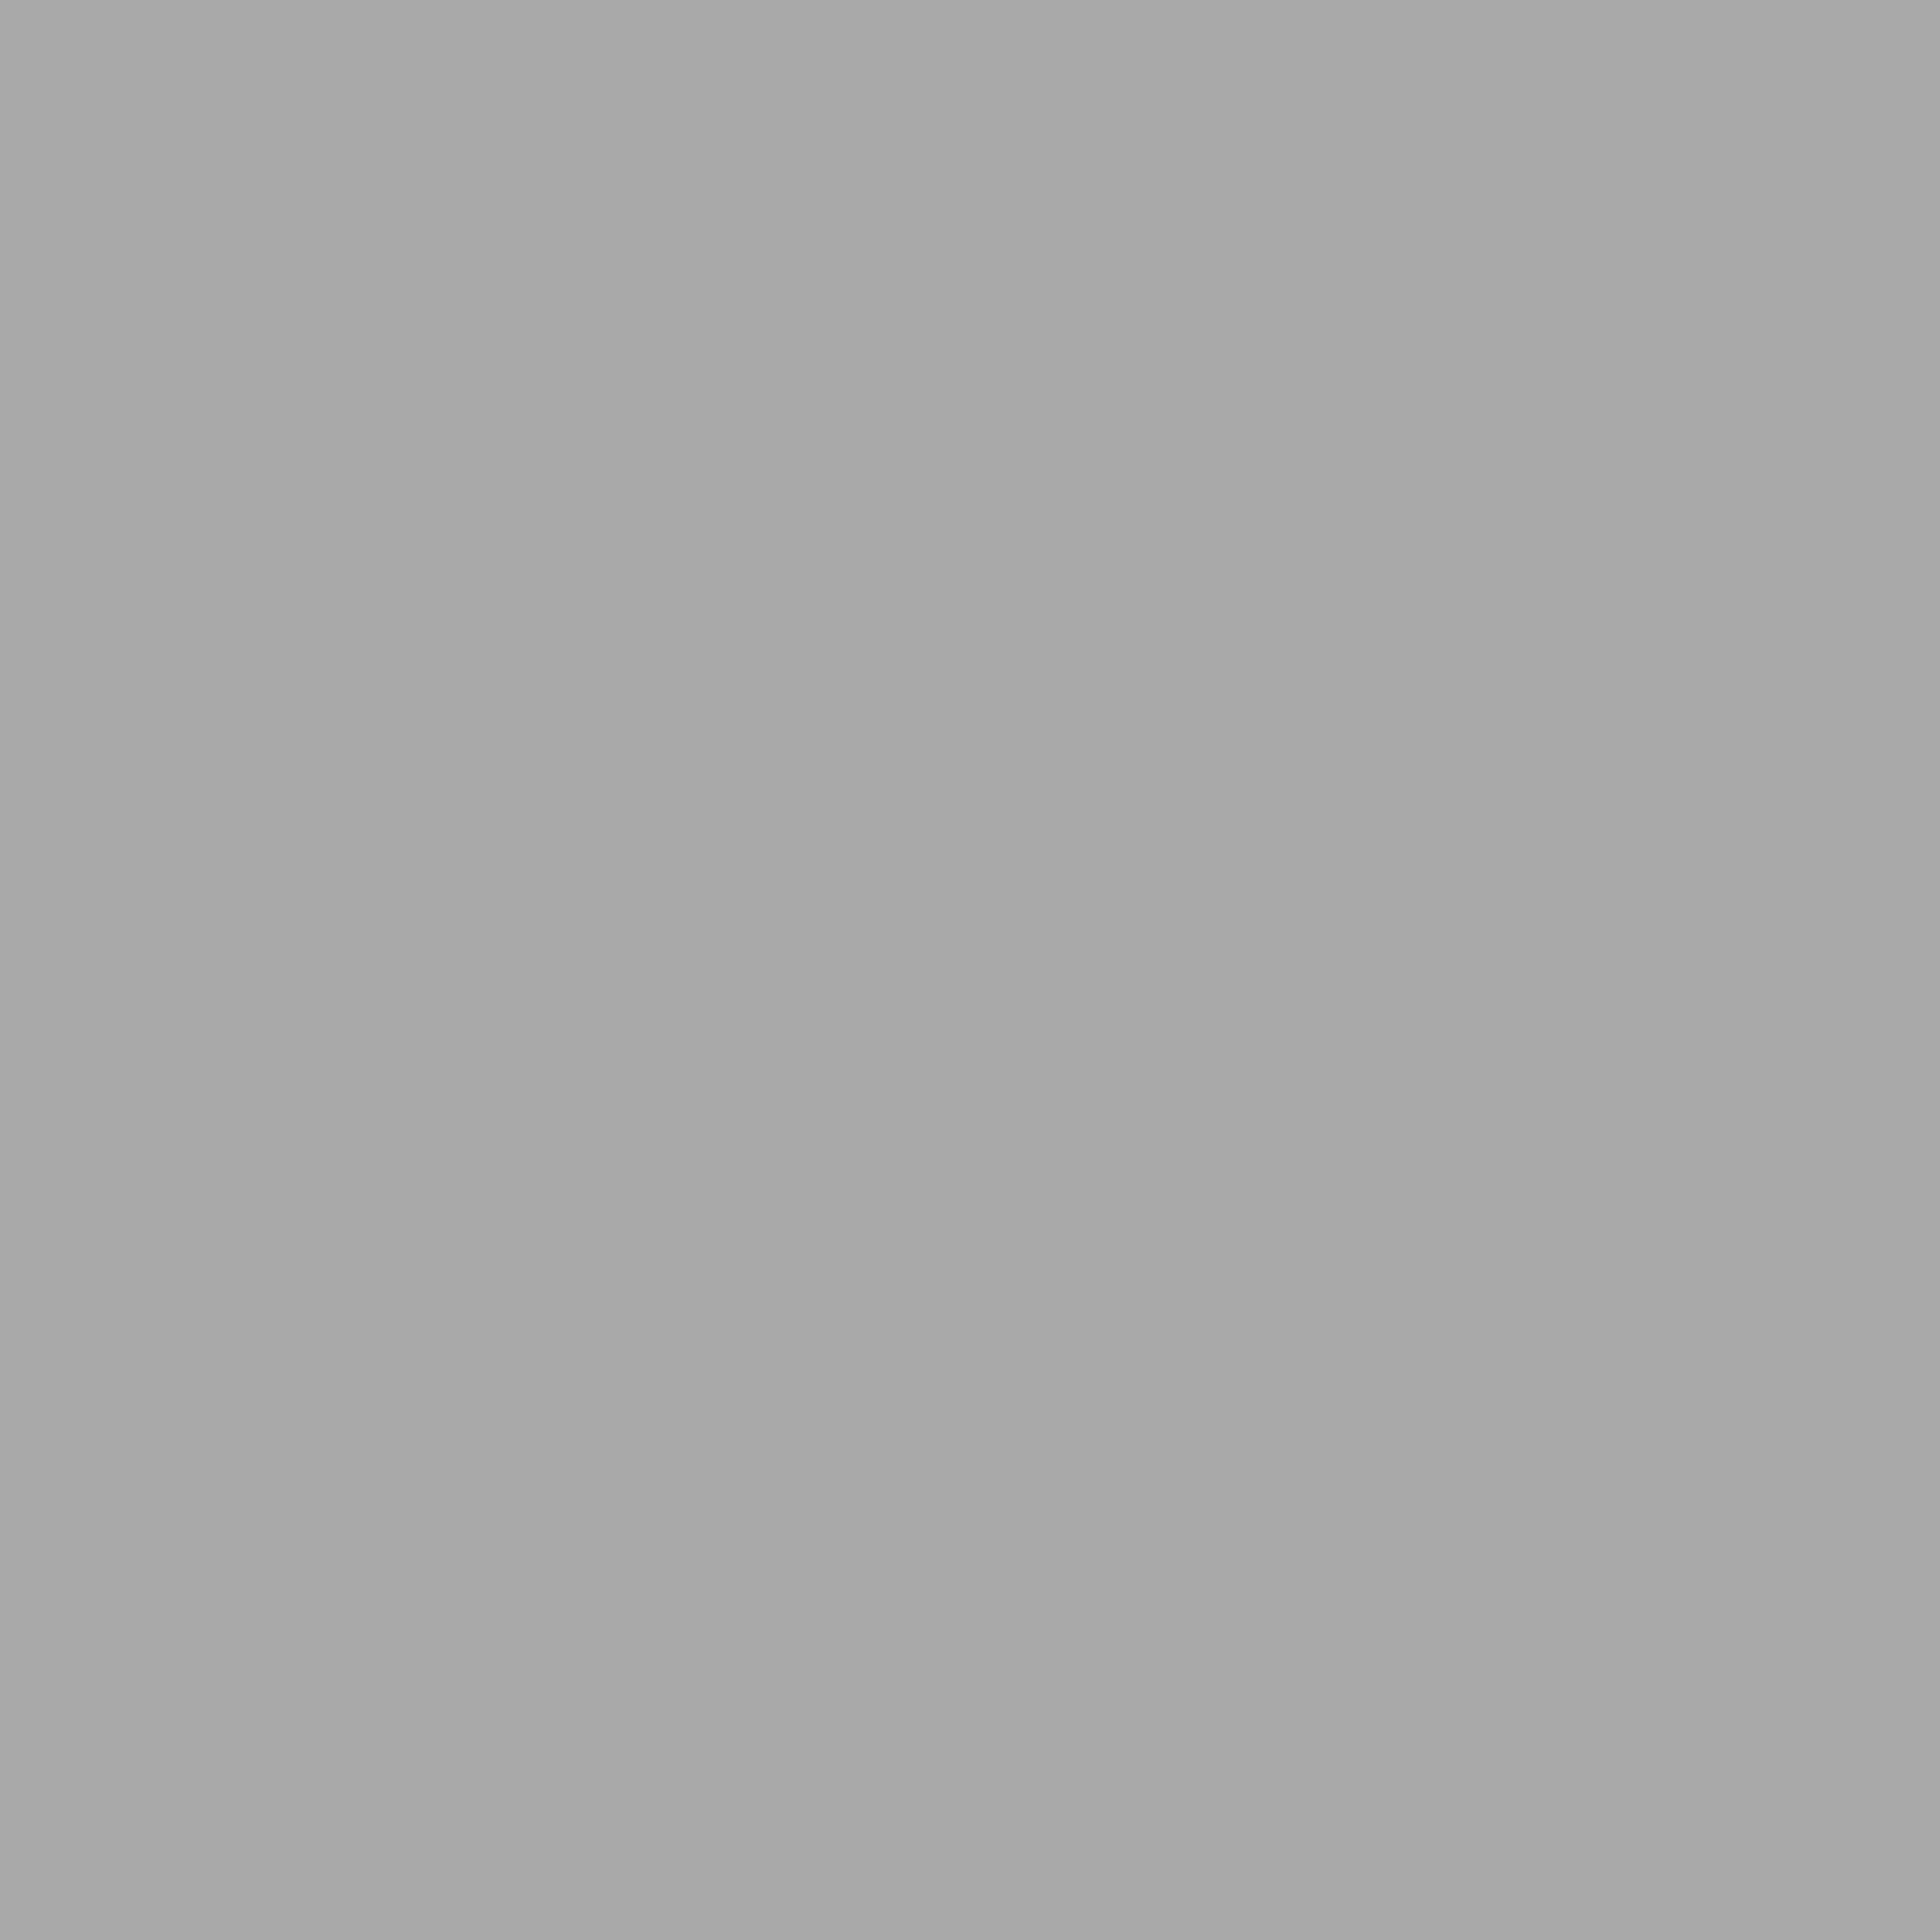 2732x2732 Dark Gray Solid Color Background